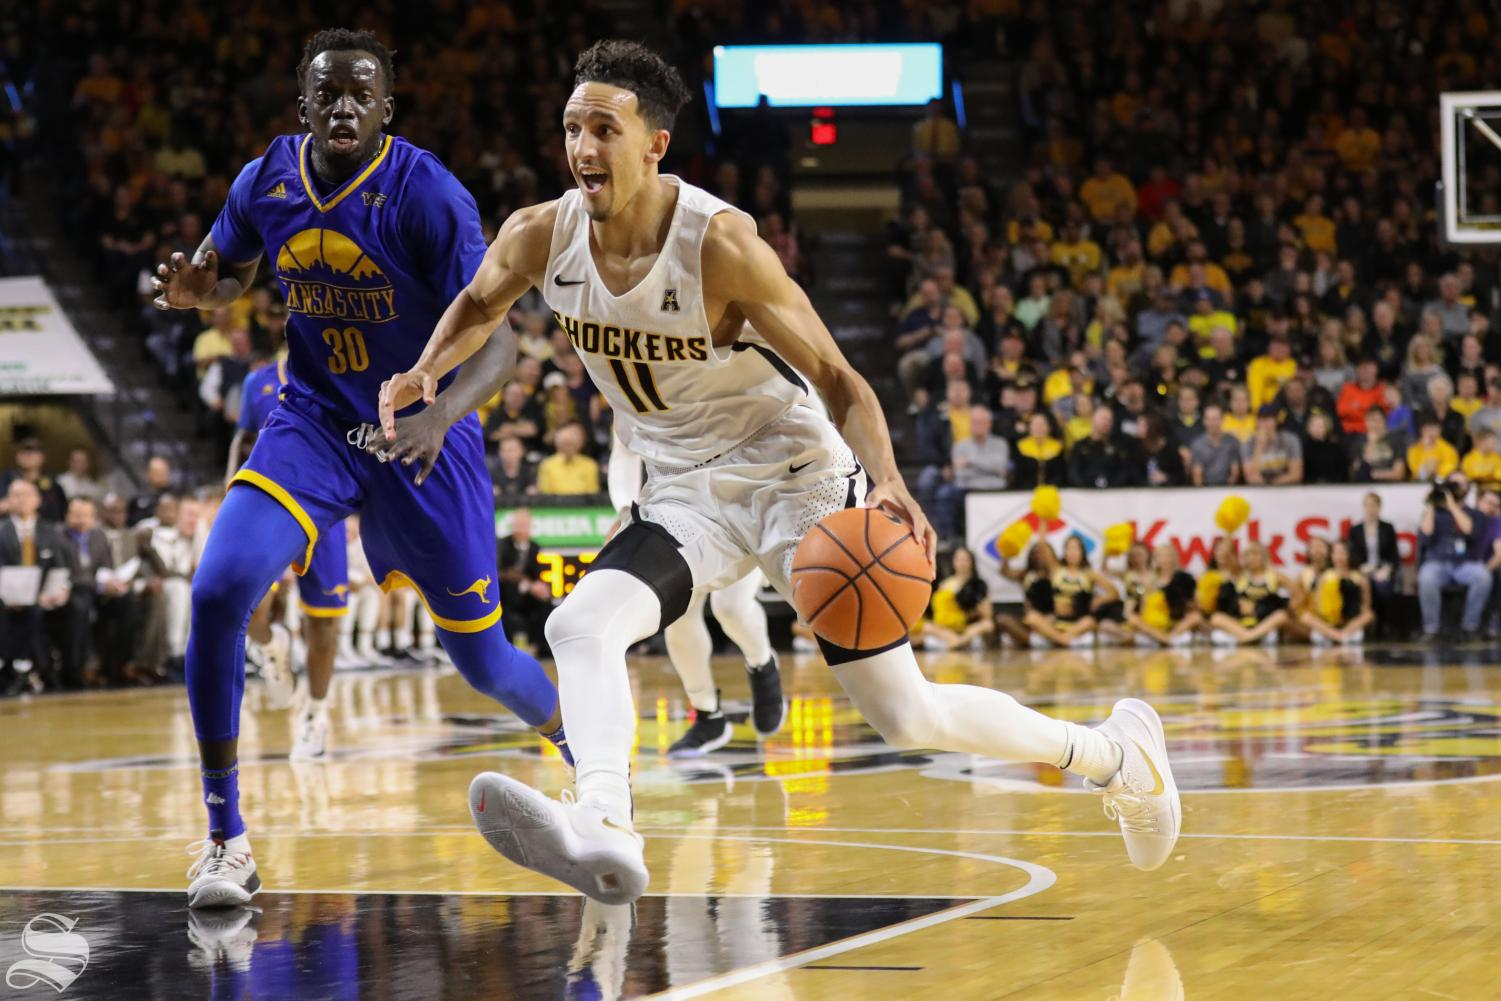 Wichita State guard Landry Shamet drives past a defender during their victory over UMKC. (Nov. 10, 2017)